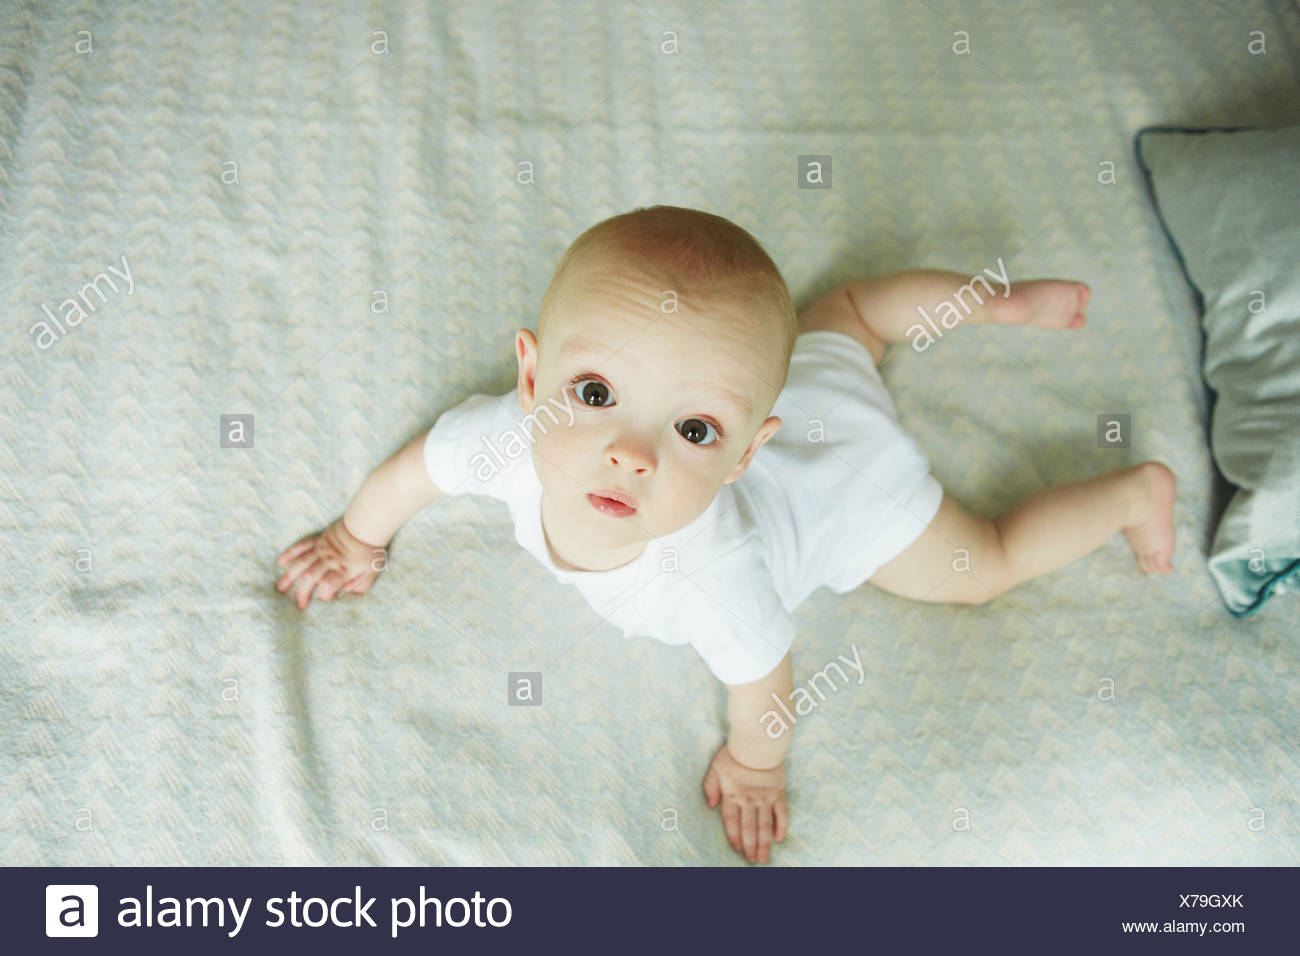 Baby Boy crawling on bed Photo Stock